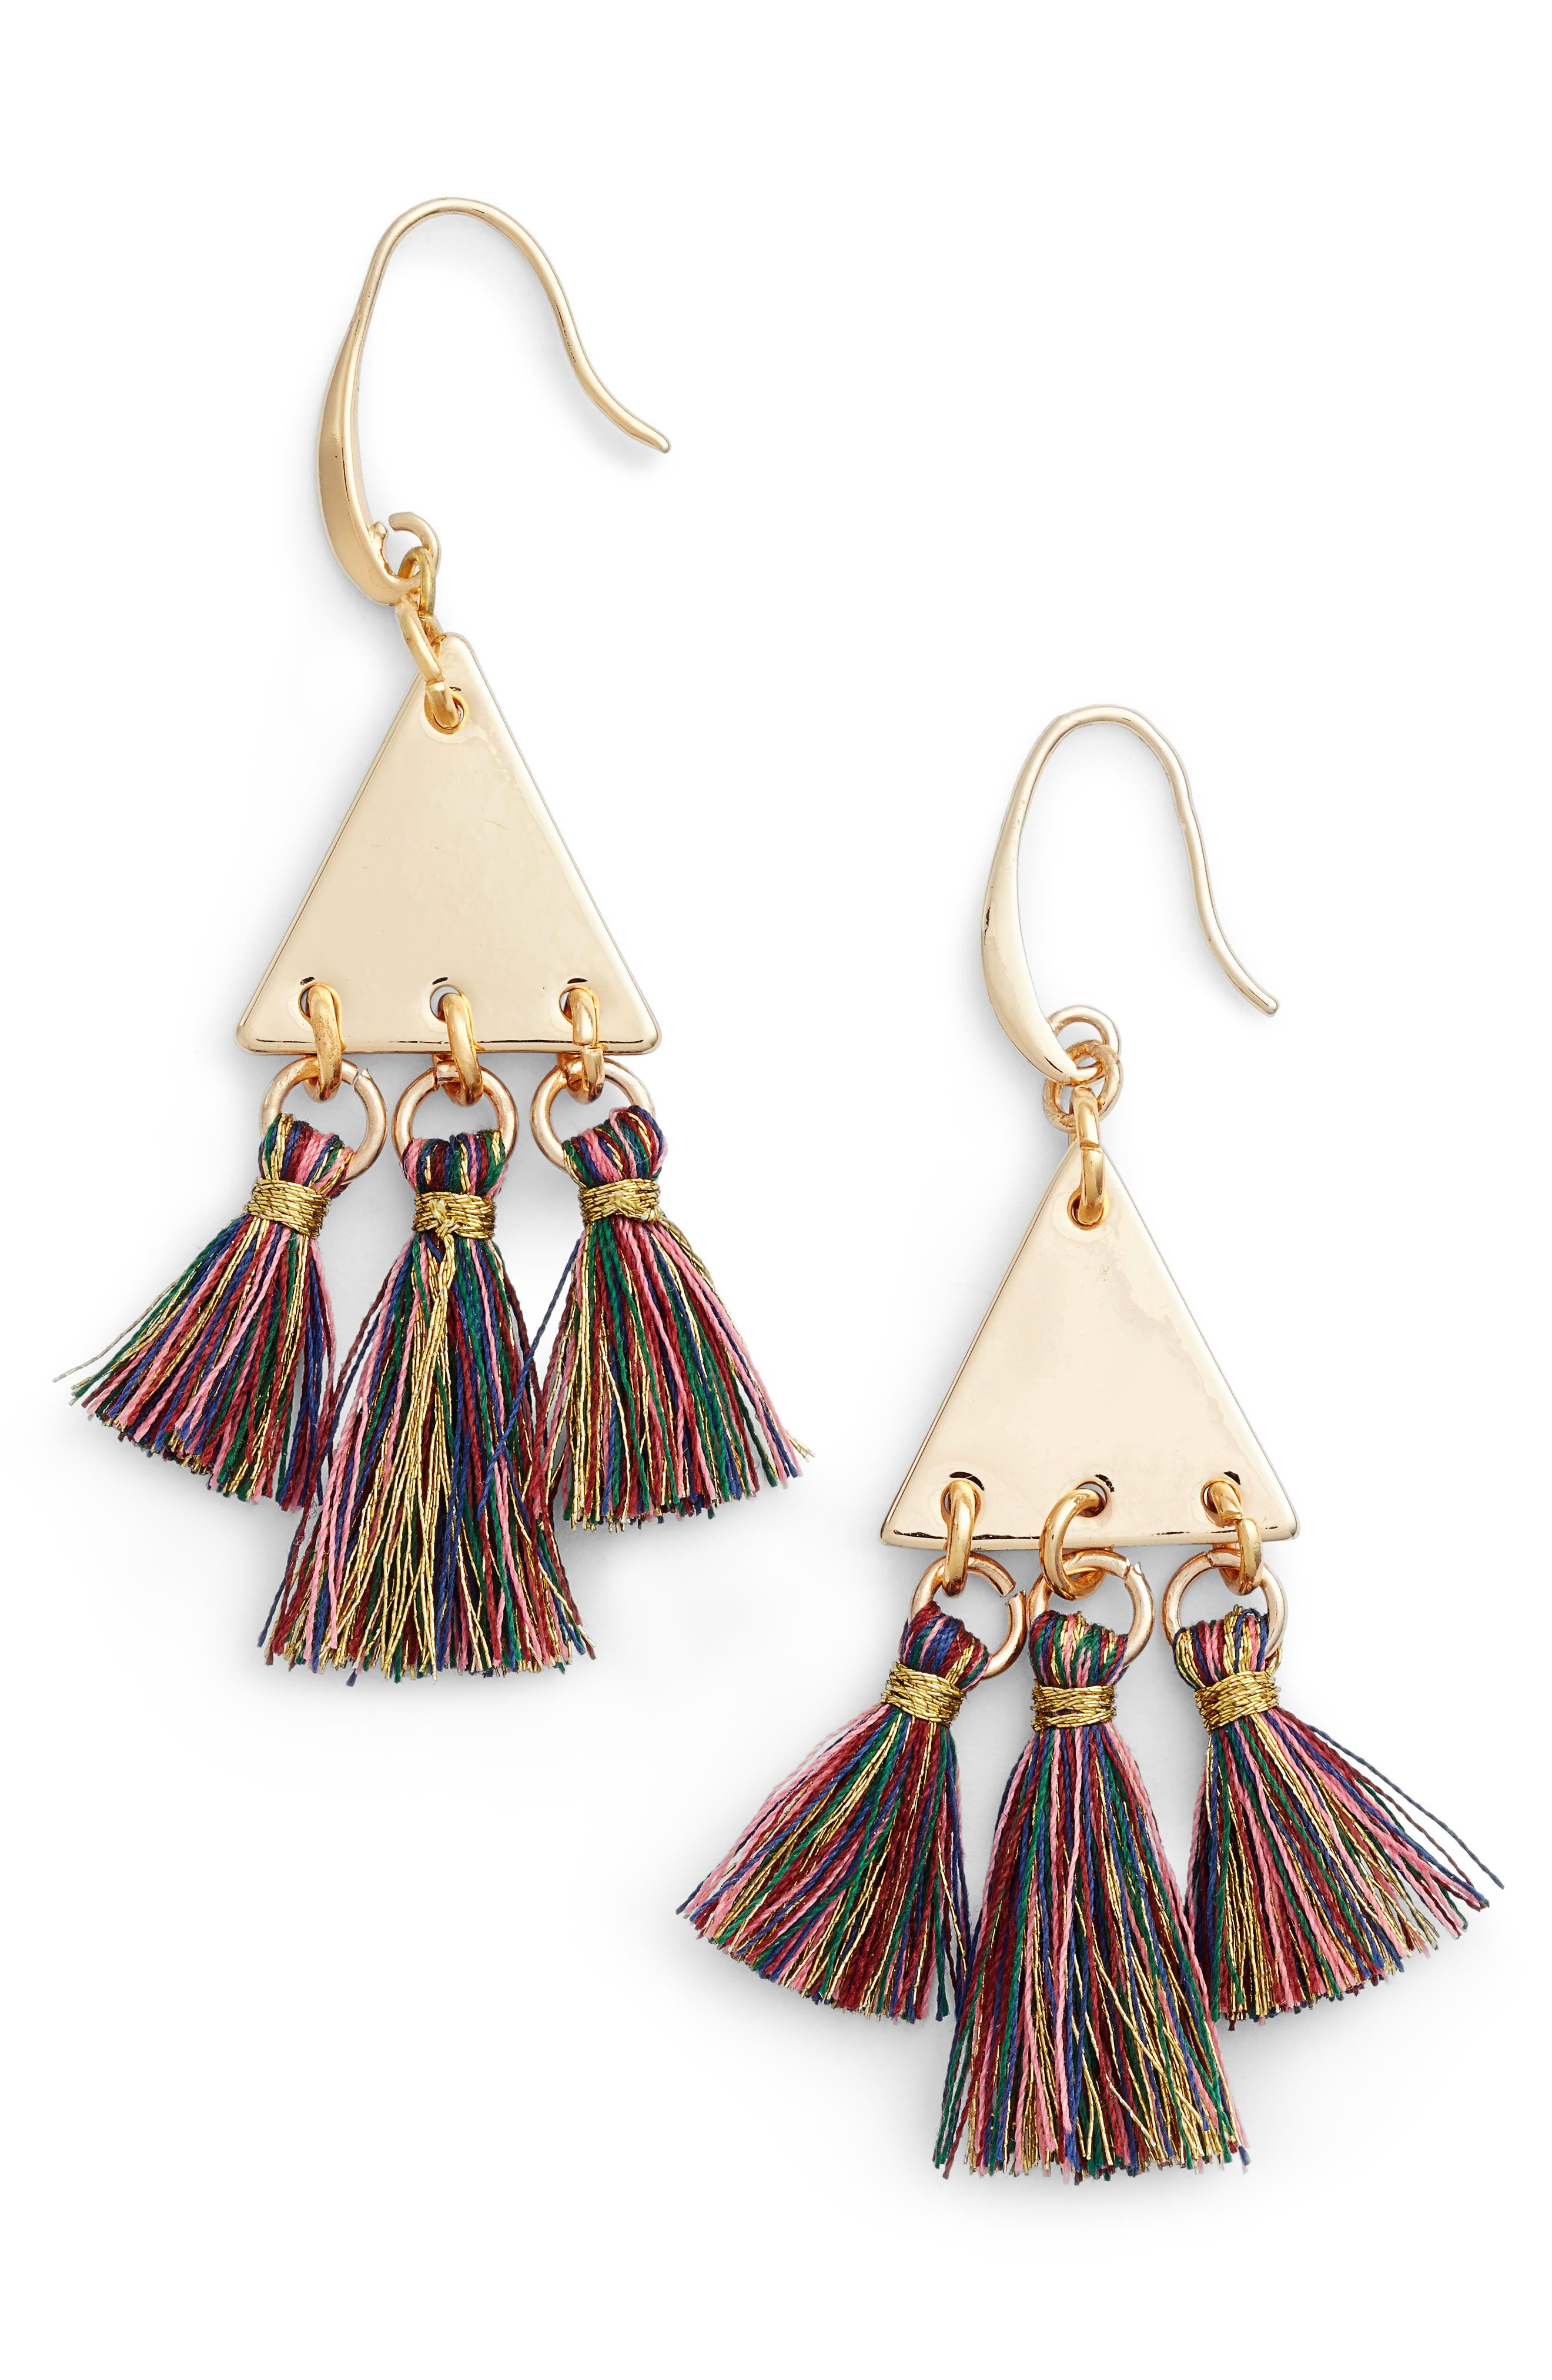 Rebecca Minkoff Triple Tassel Chandelier Earrings